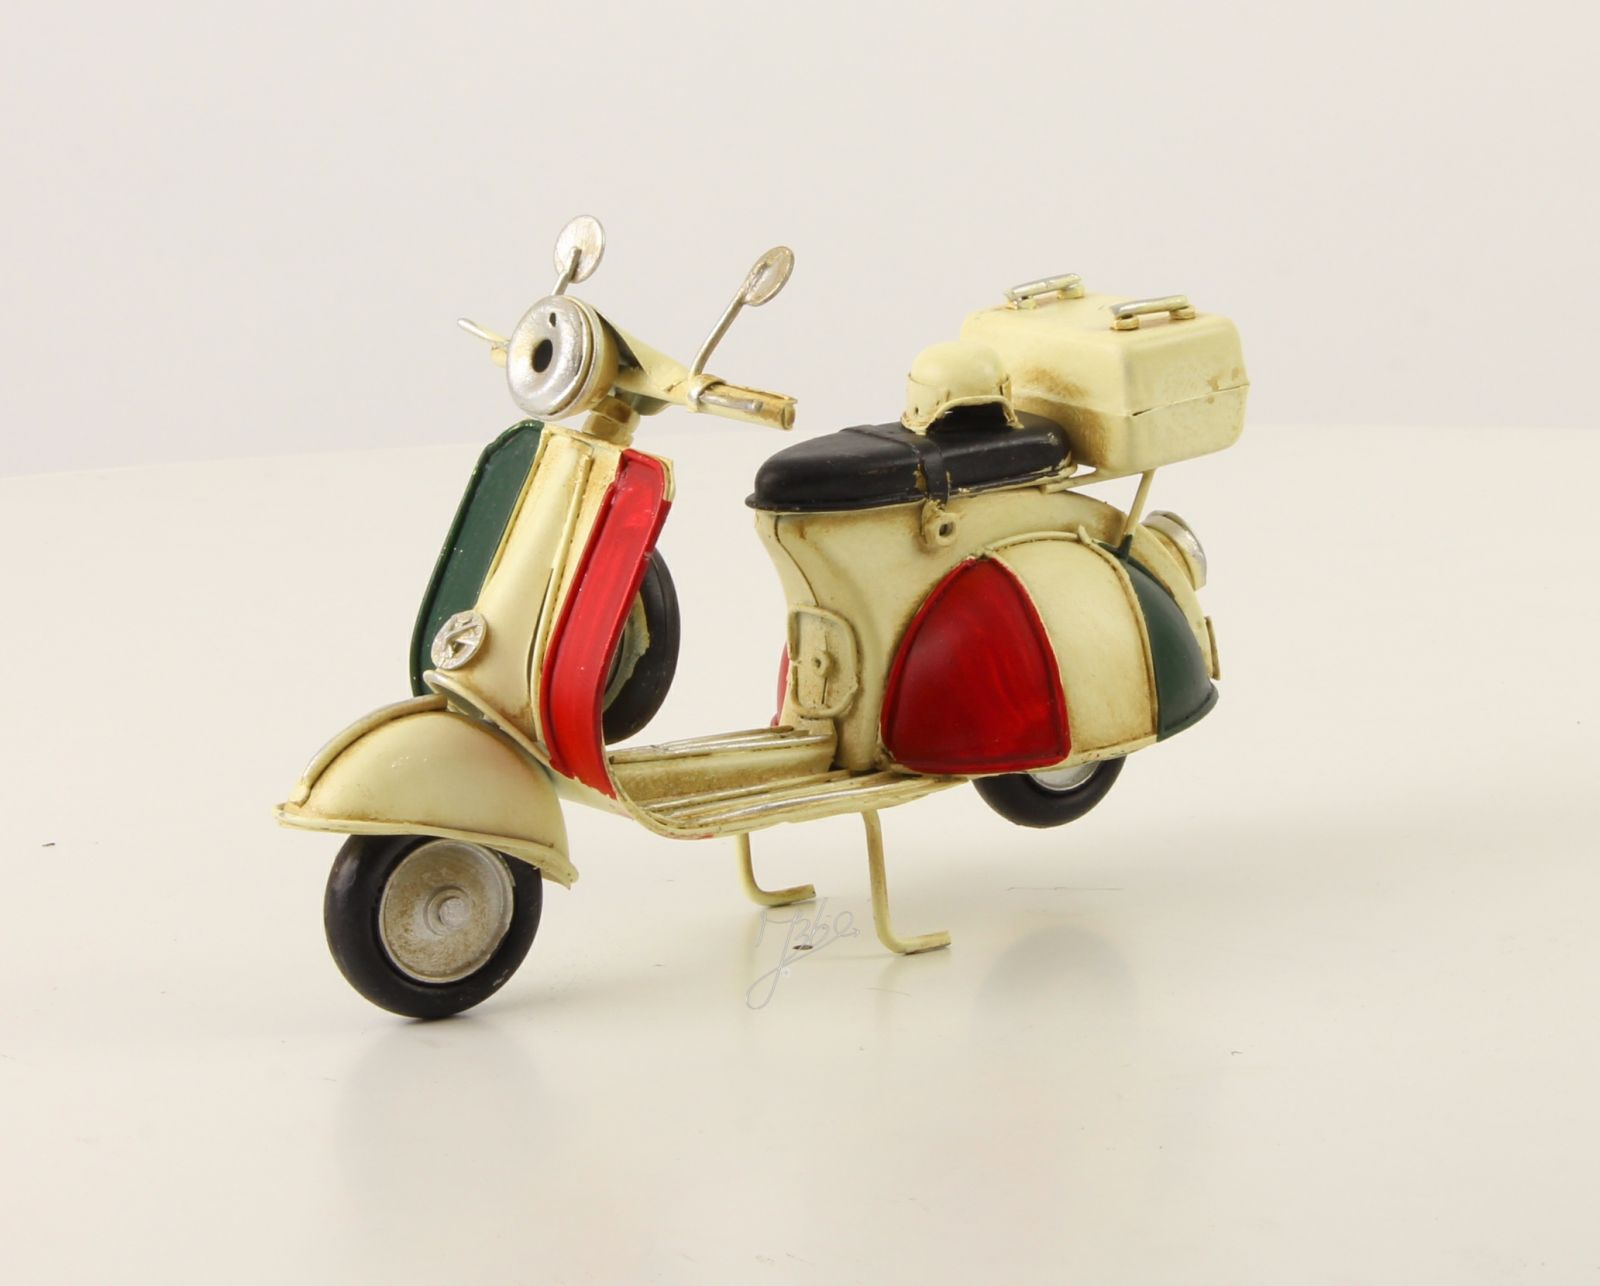 A TIN MODEL OF A SCOOTER